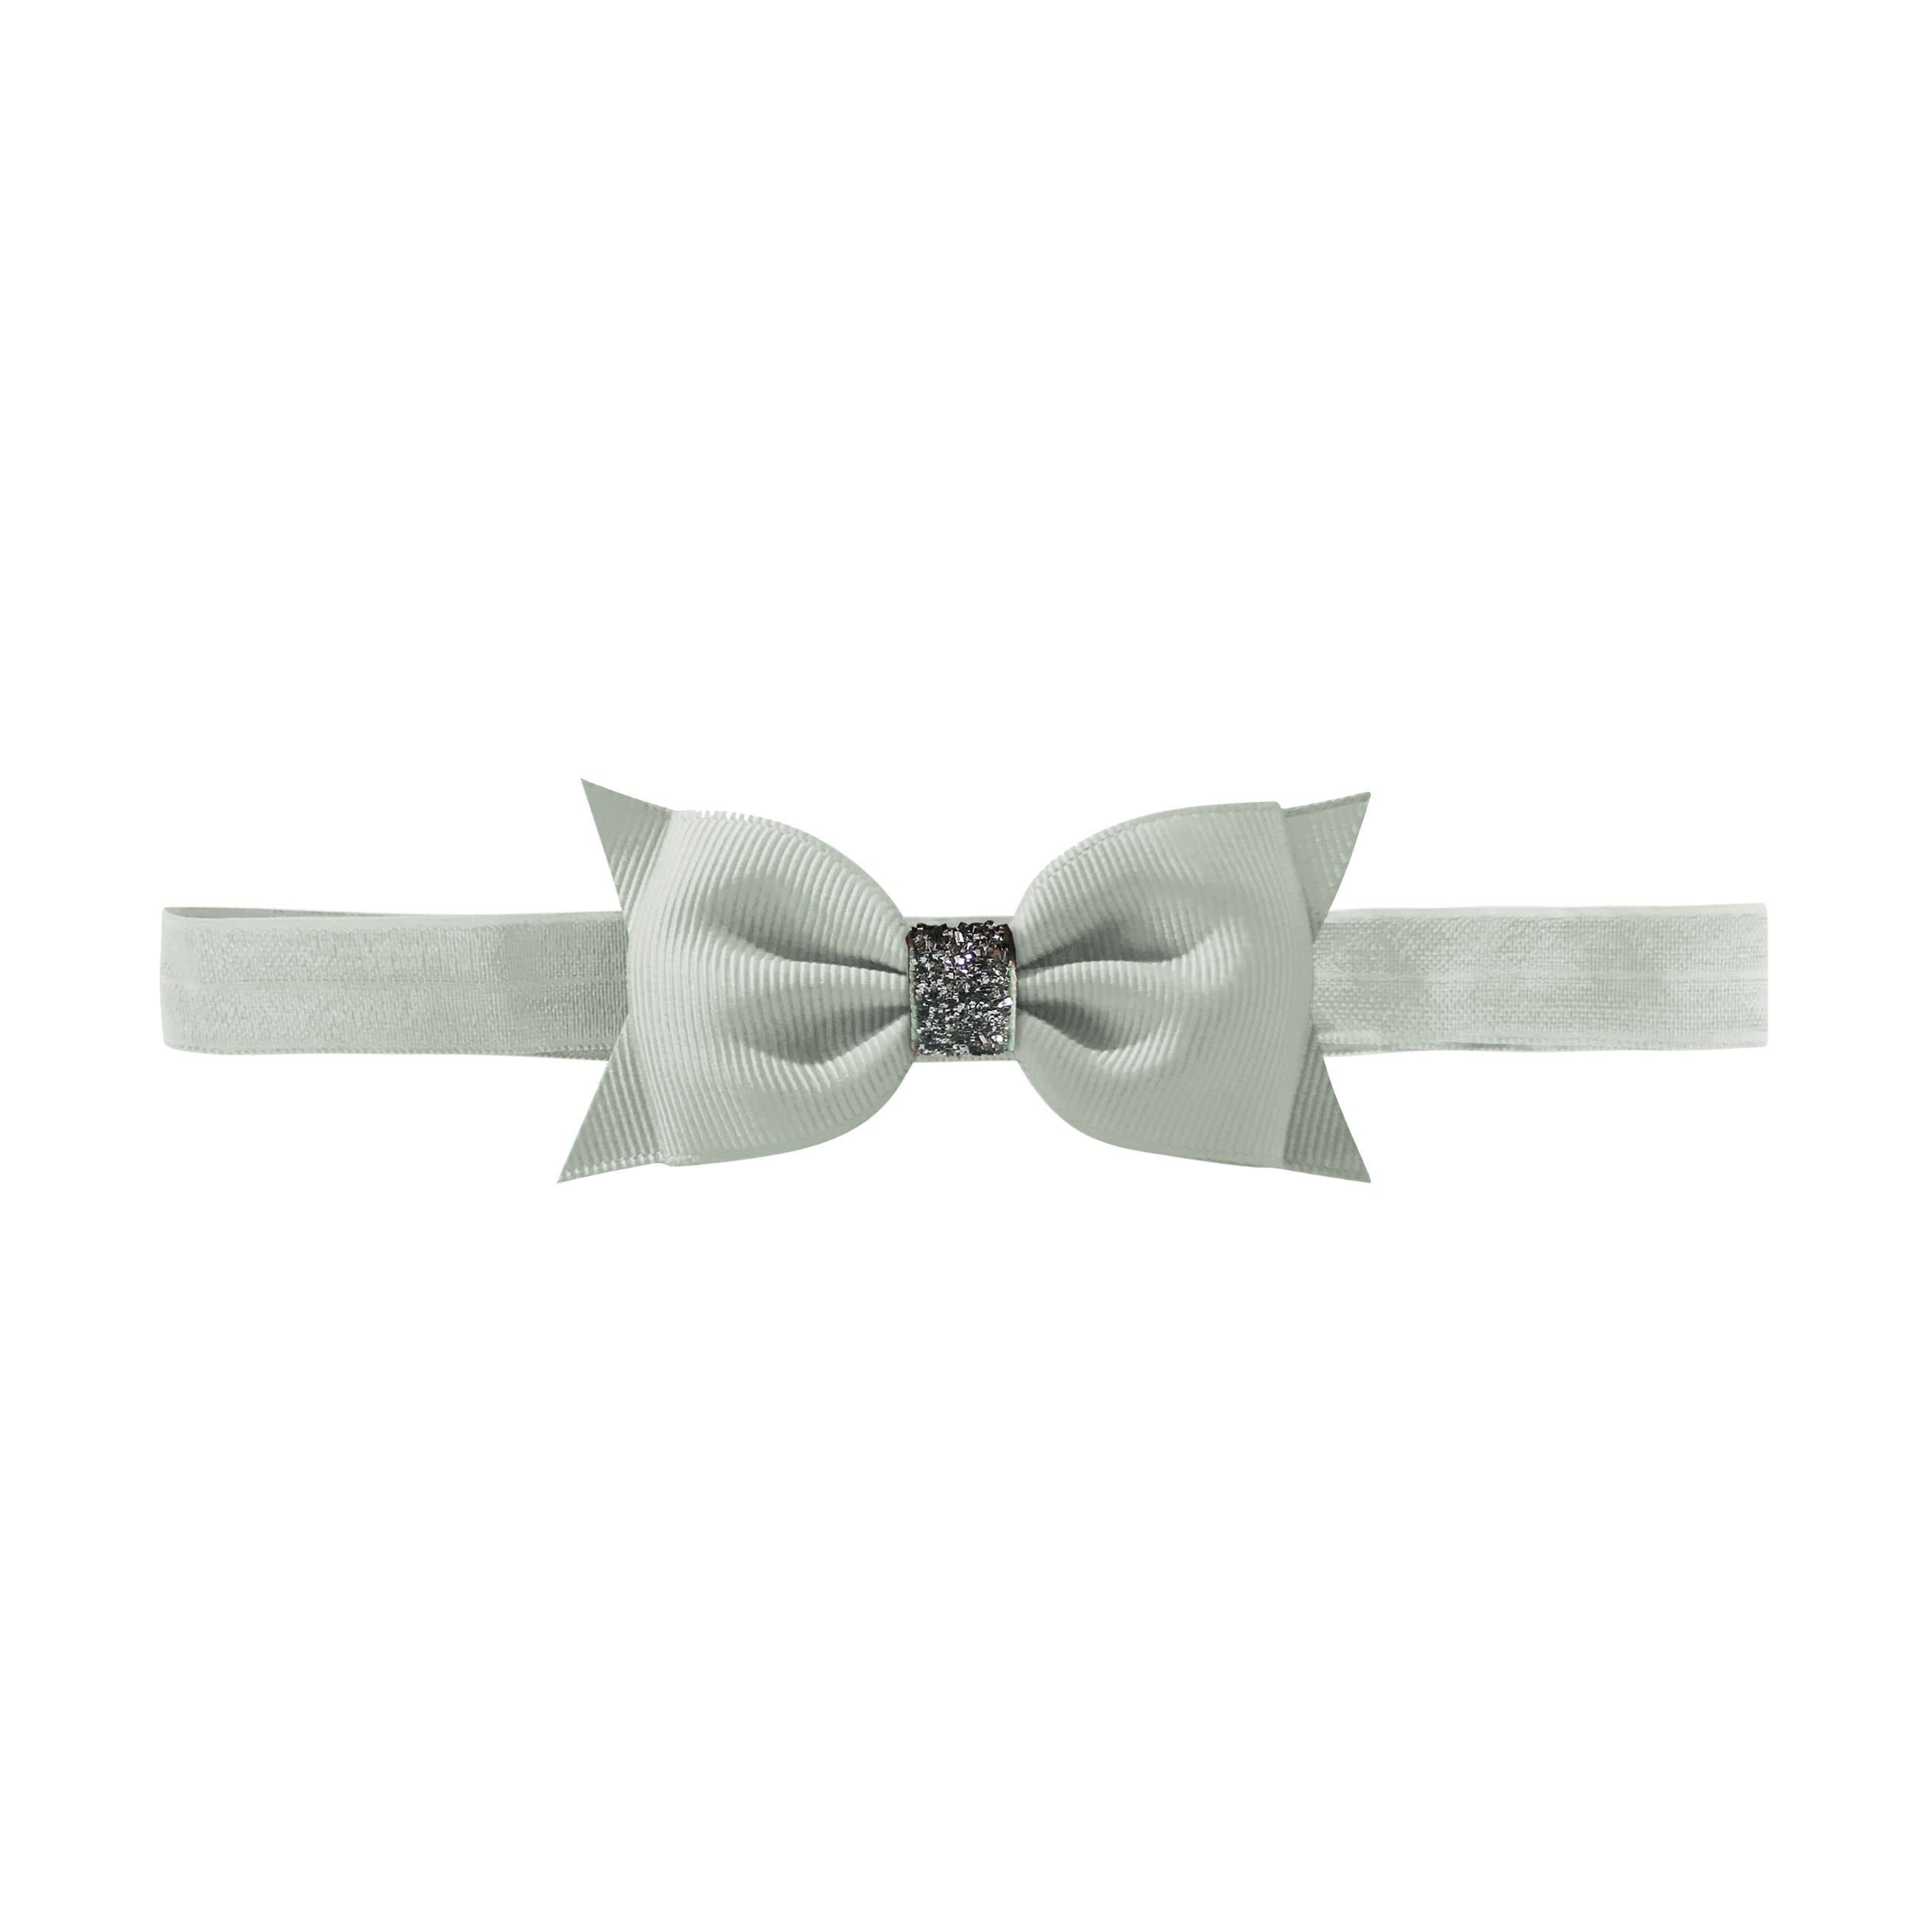 Image of   Double Bowtie bow - elastic hairband - light silver glitter